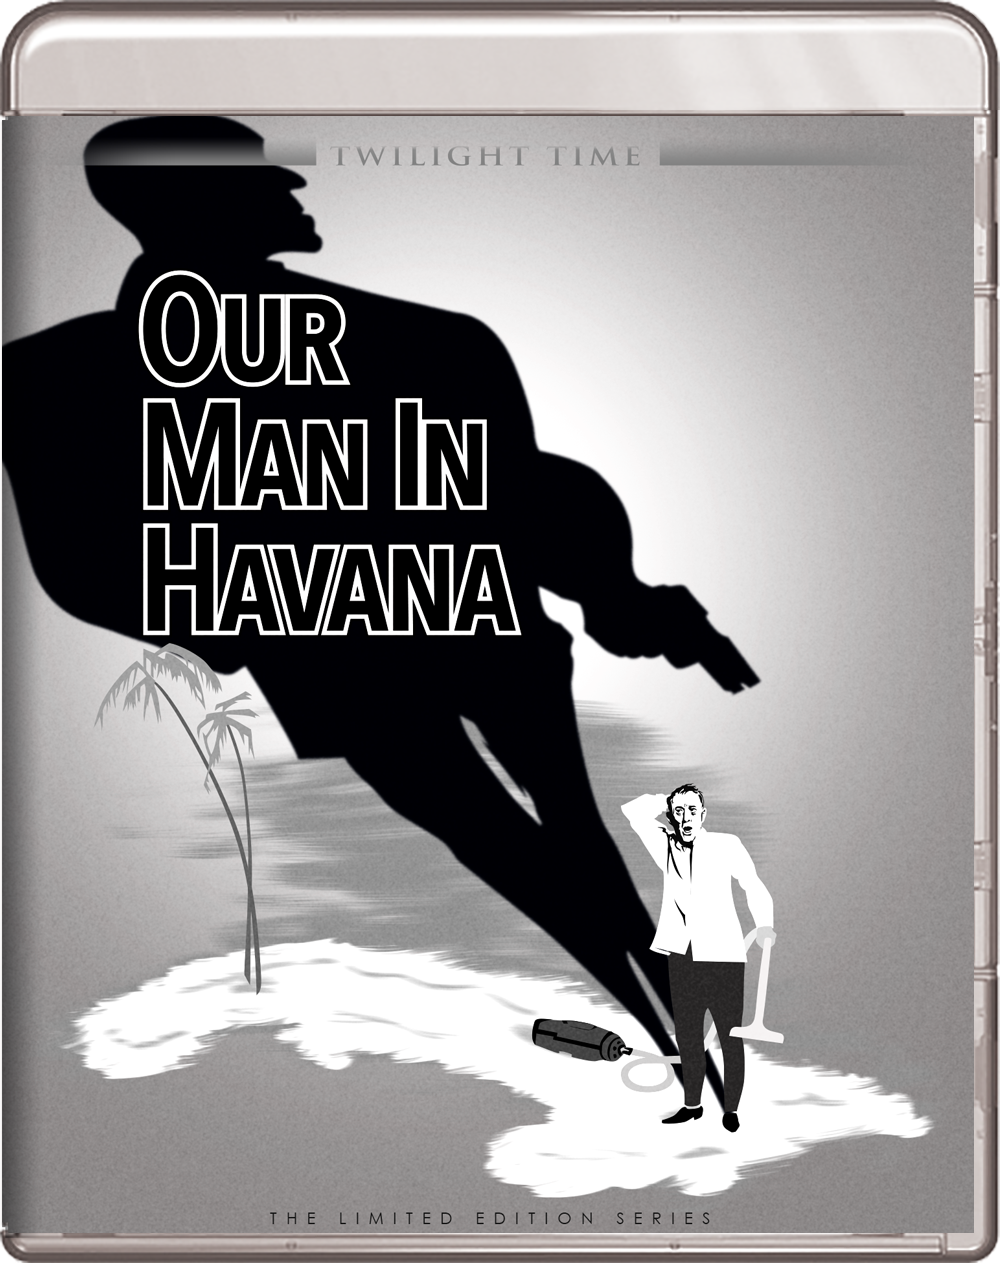 mr jim wormold the unlikely optimist in our man in havana Download subtitles for movie our man in havana jim wormold, who is a vacuum cleaner salesman, participates as an agent in the british secret service but he soon realizes that his plans by lying are going to get him into trouble lots of languages.